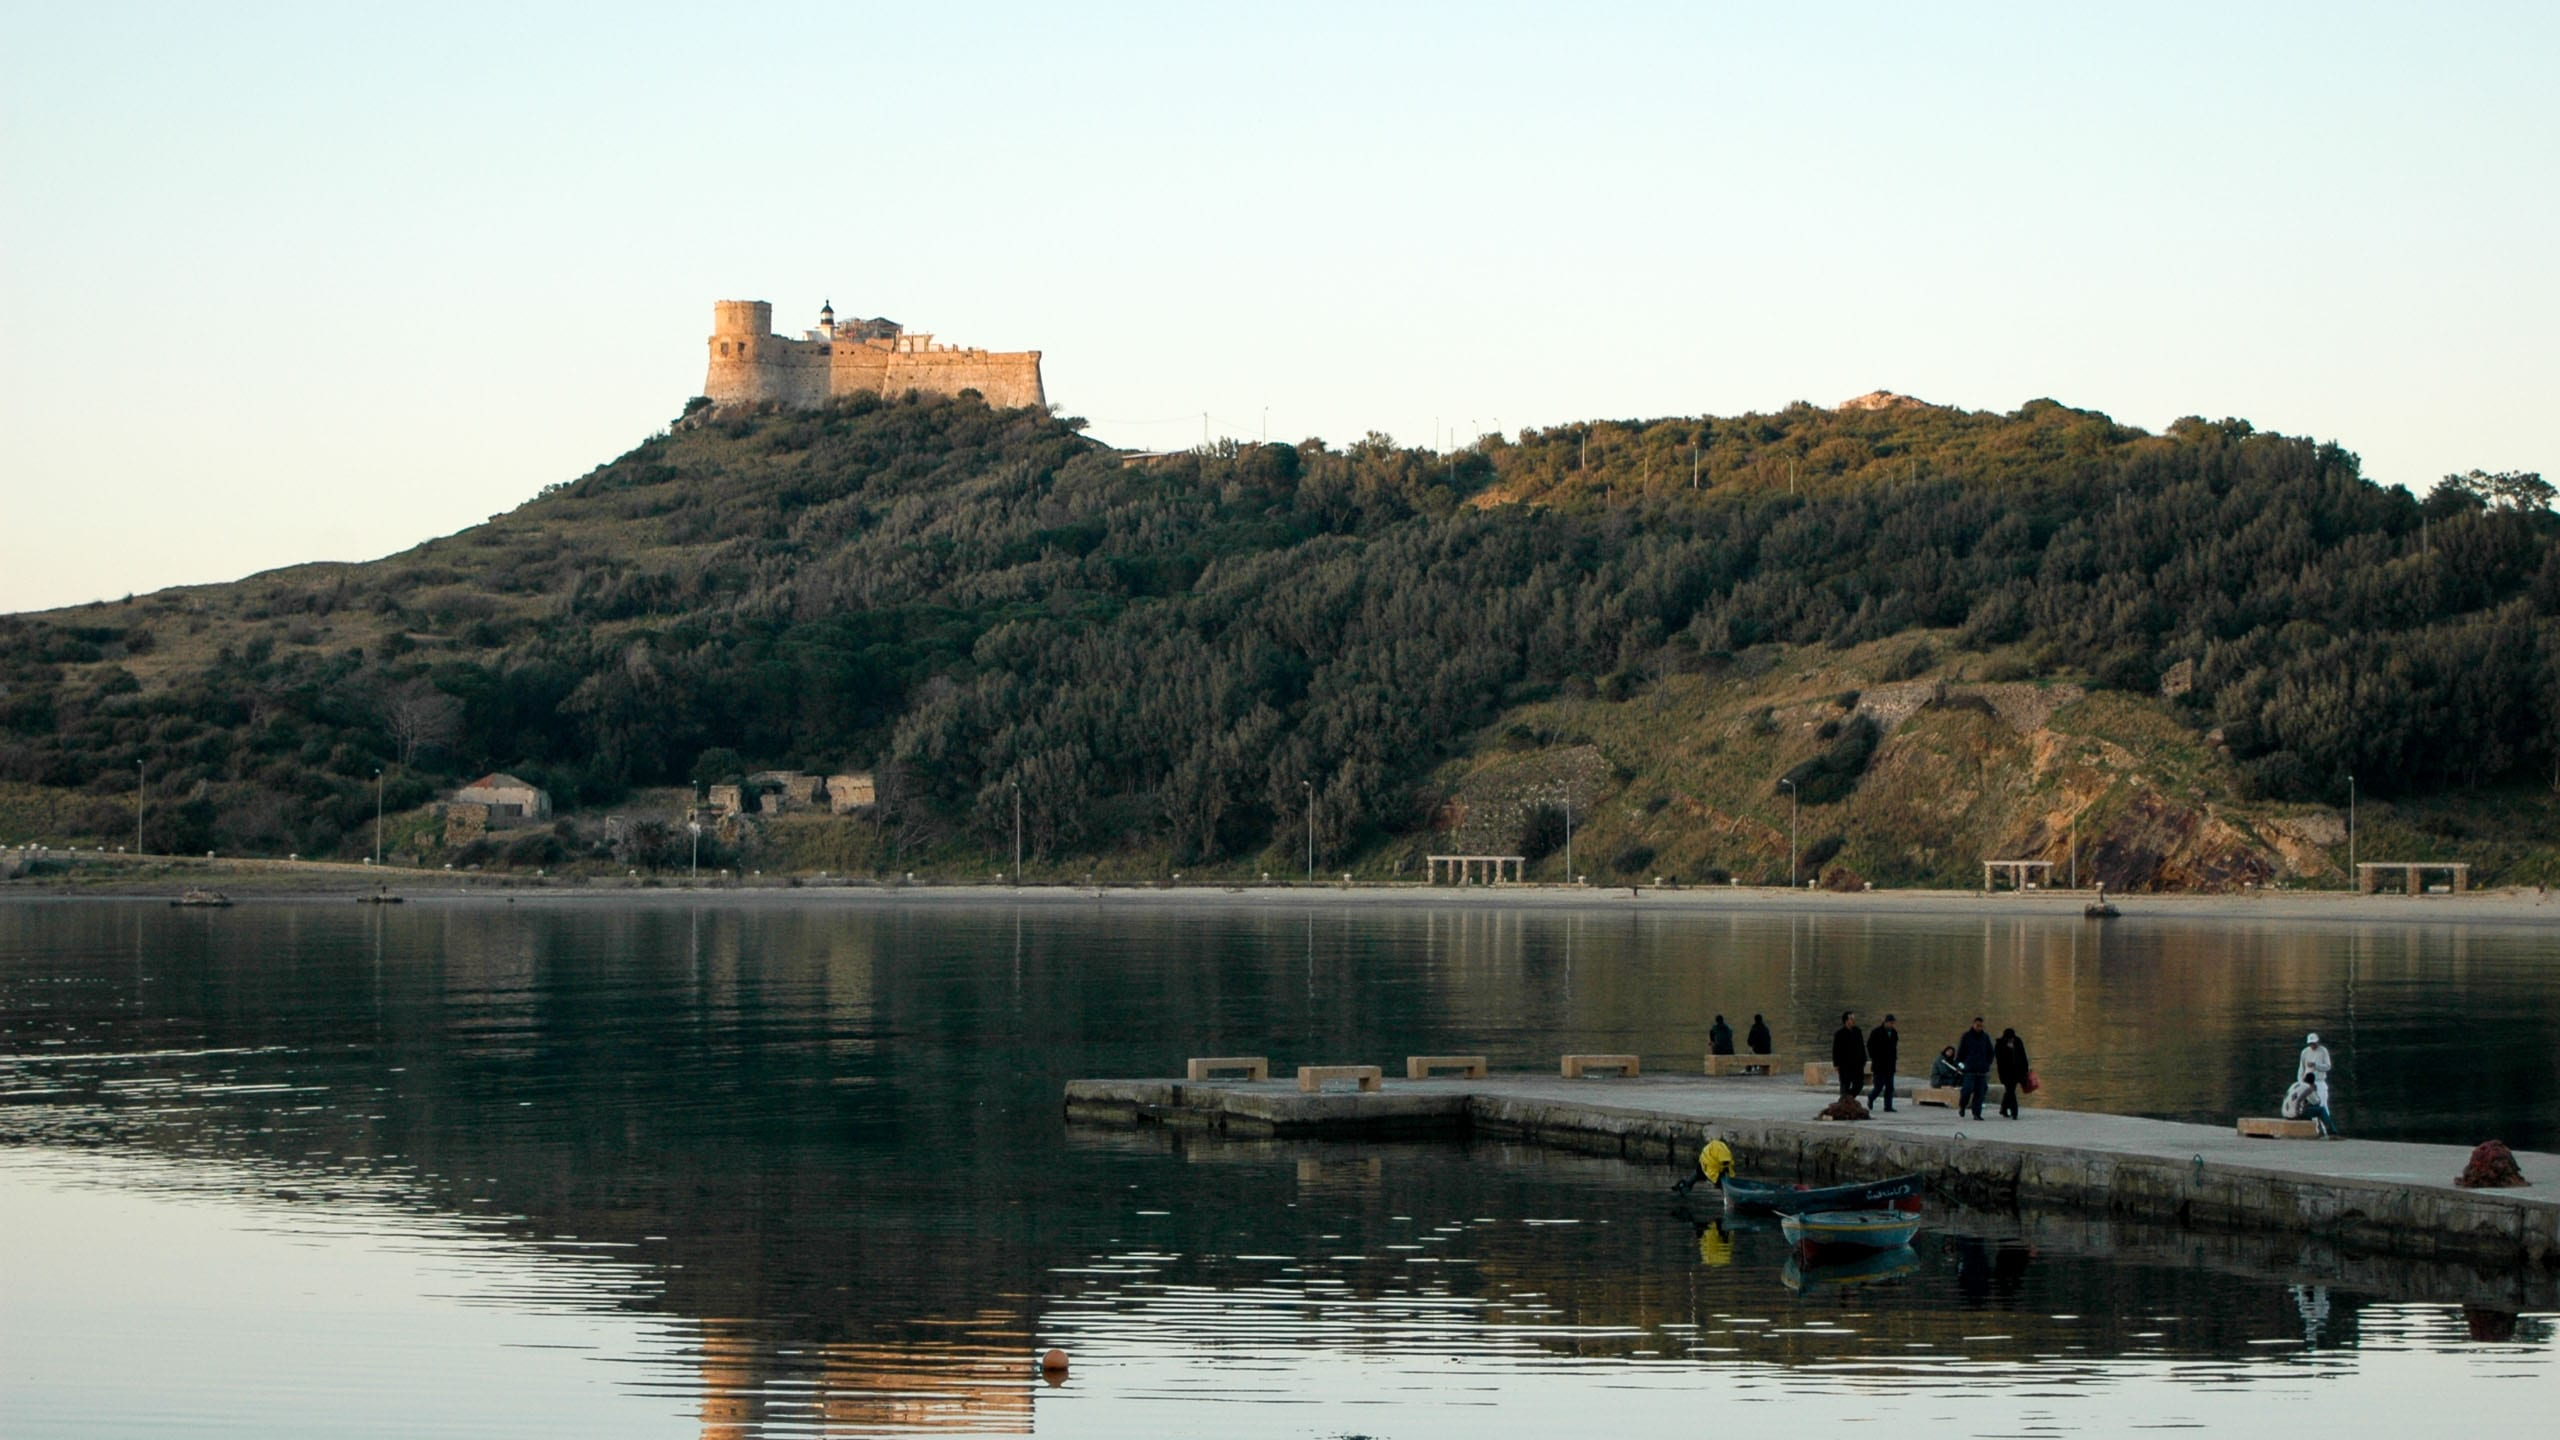 Castle sits on hill above Tunisia shore